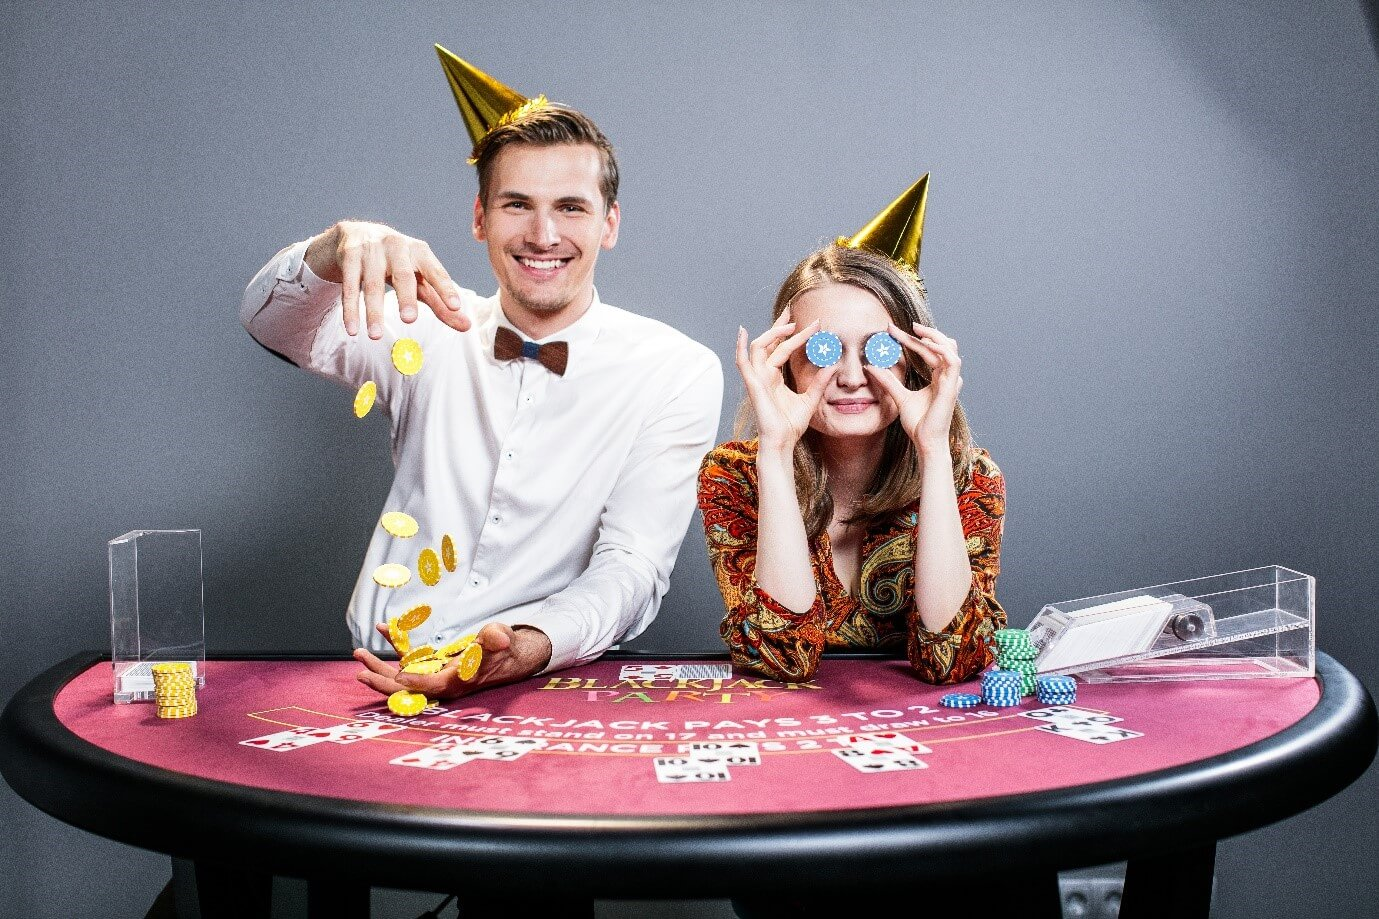 Blackjack Party table from Evolution Gaming live casino